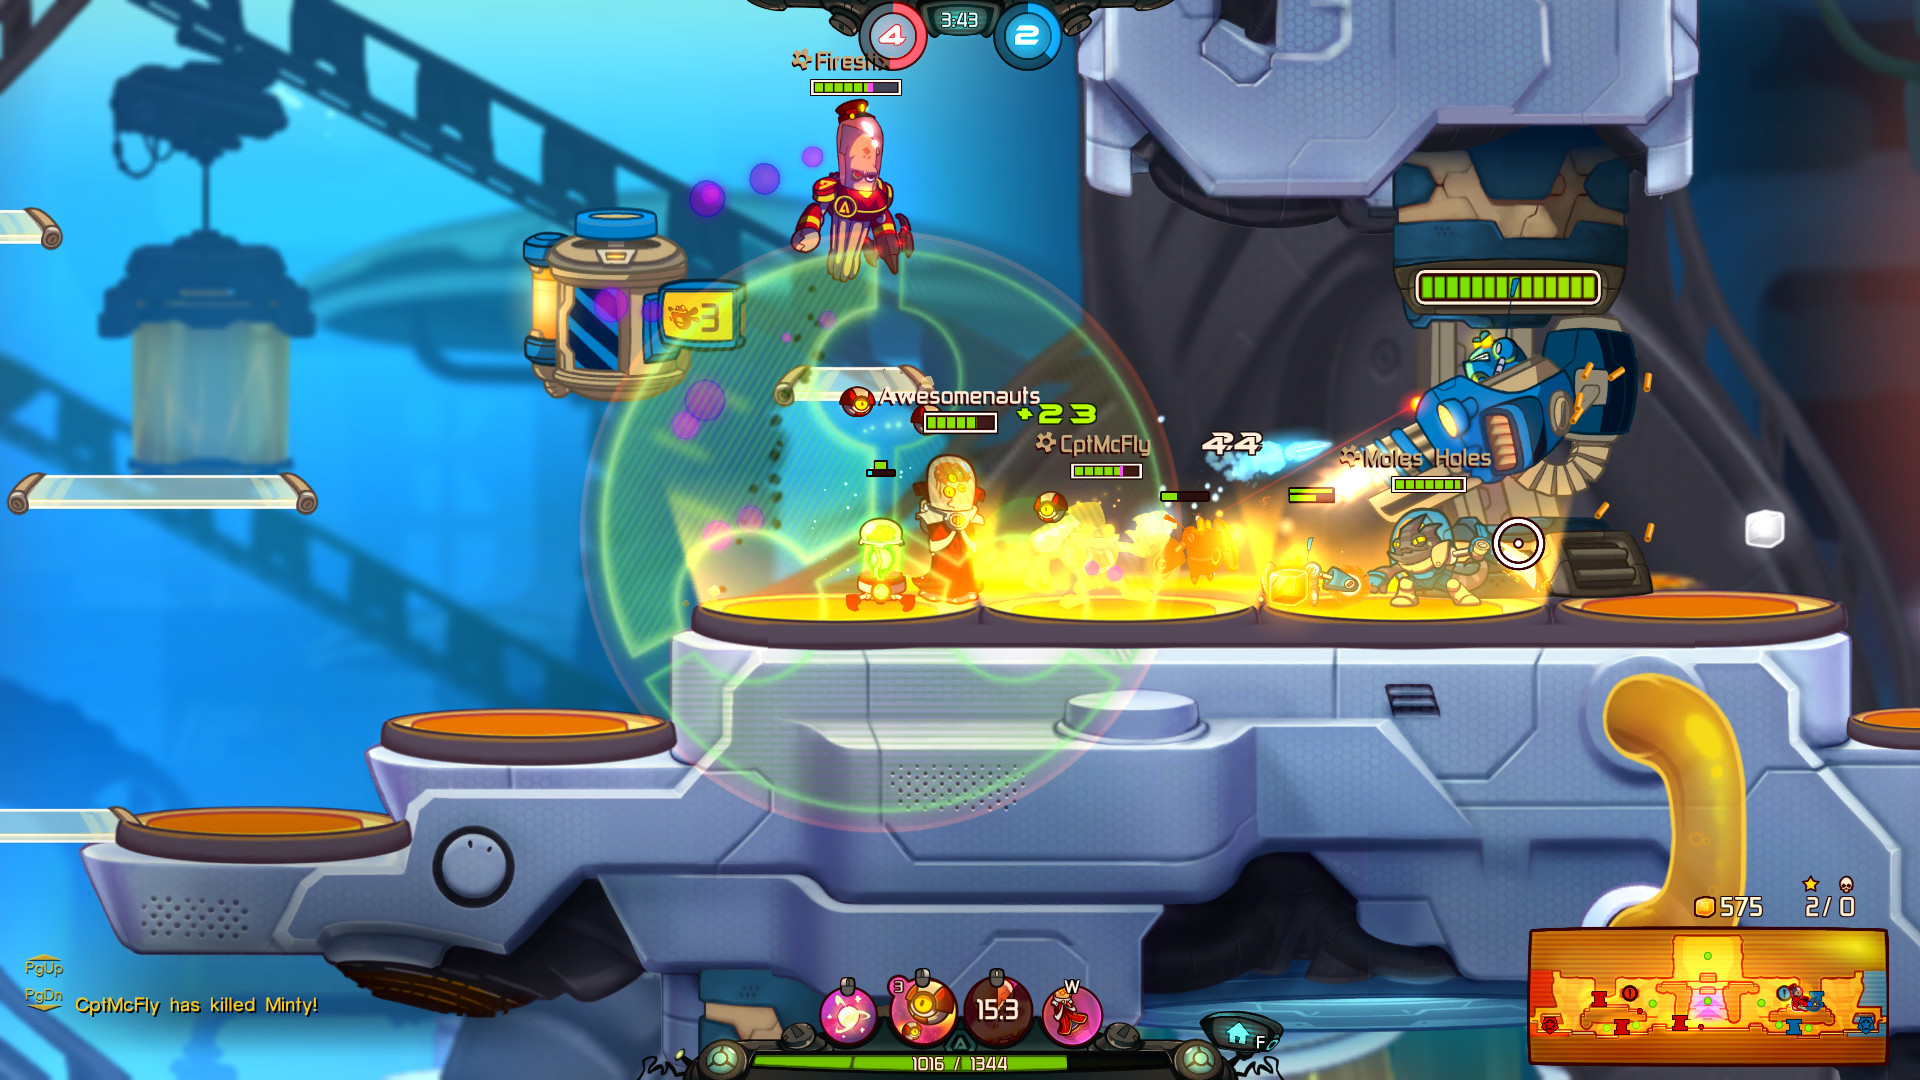 Awesomenauts Gameplay Screenshot 1